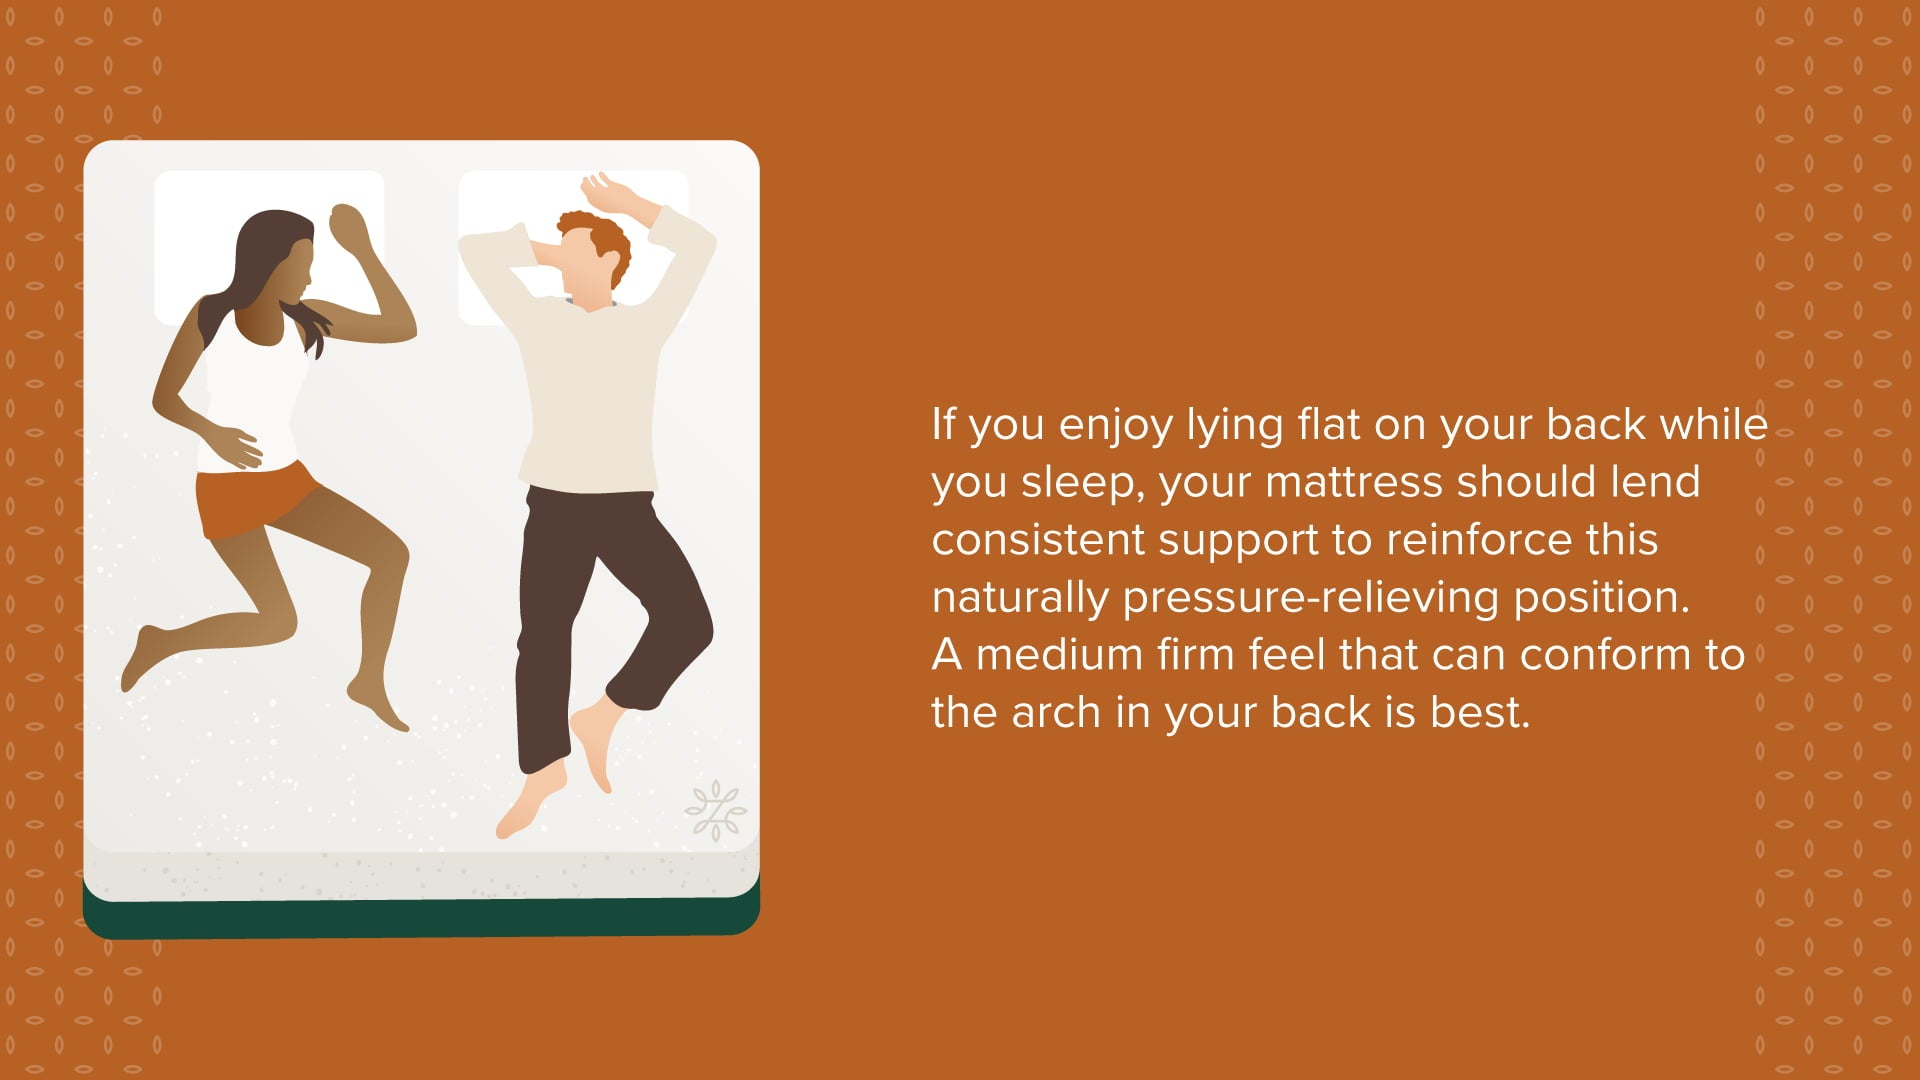 back sleeper your mattress should lend consistent support to reinforce this naturally pressure-relieving position